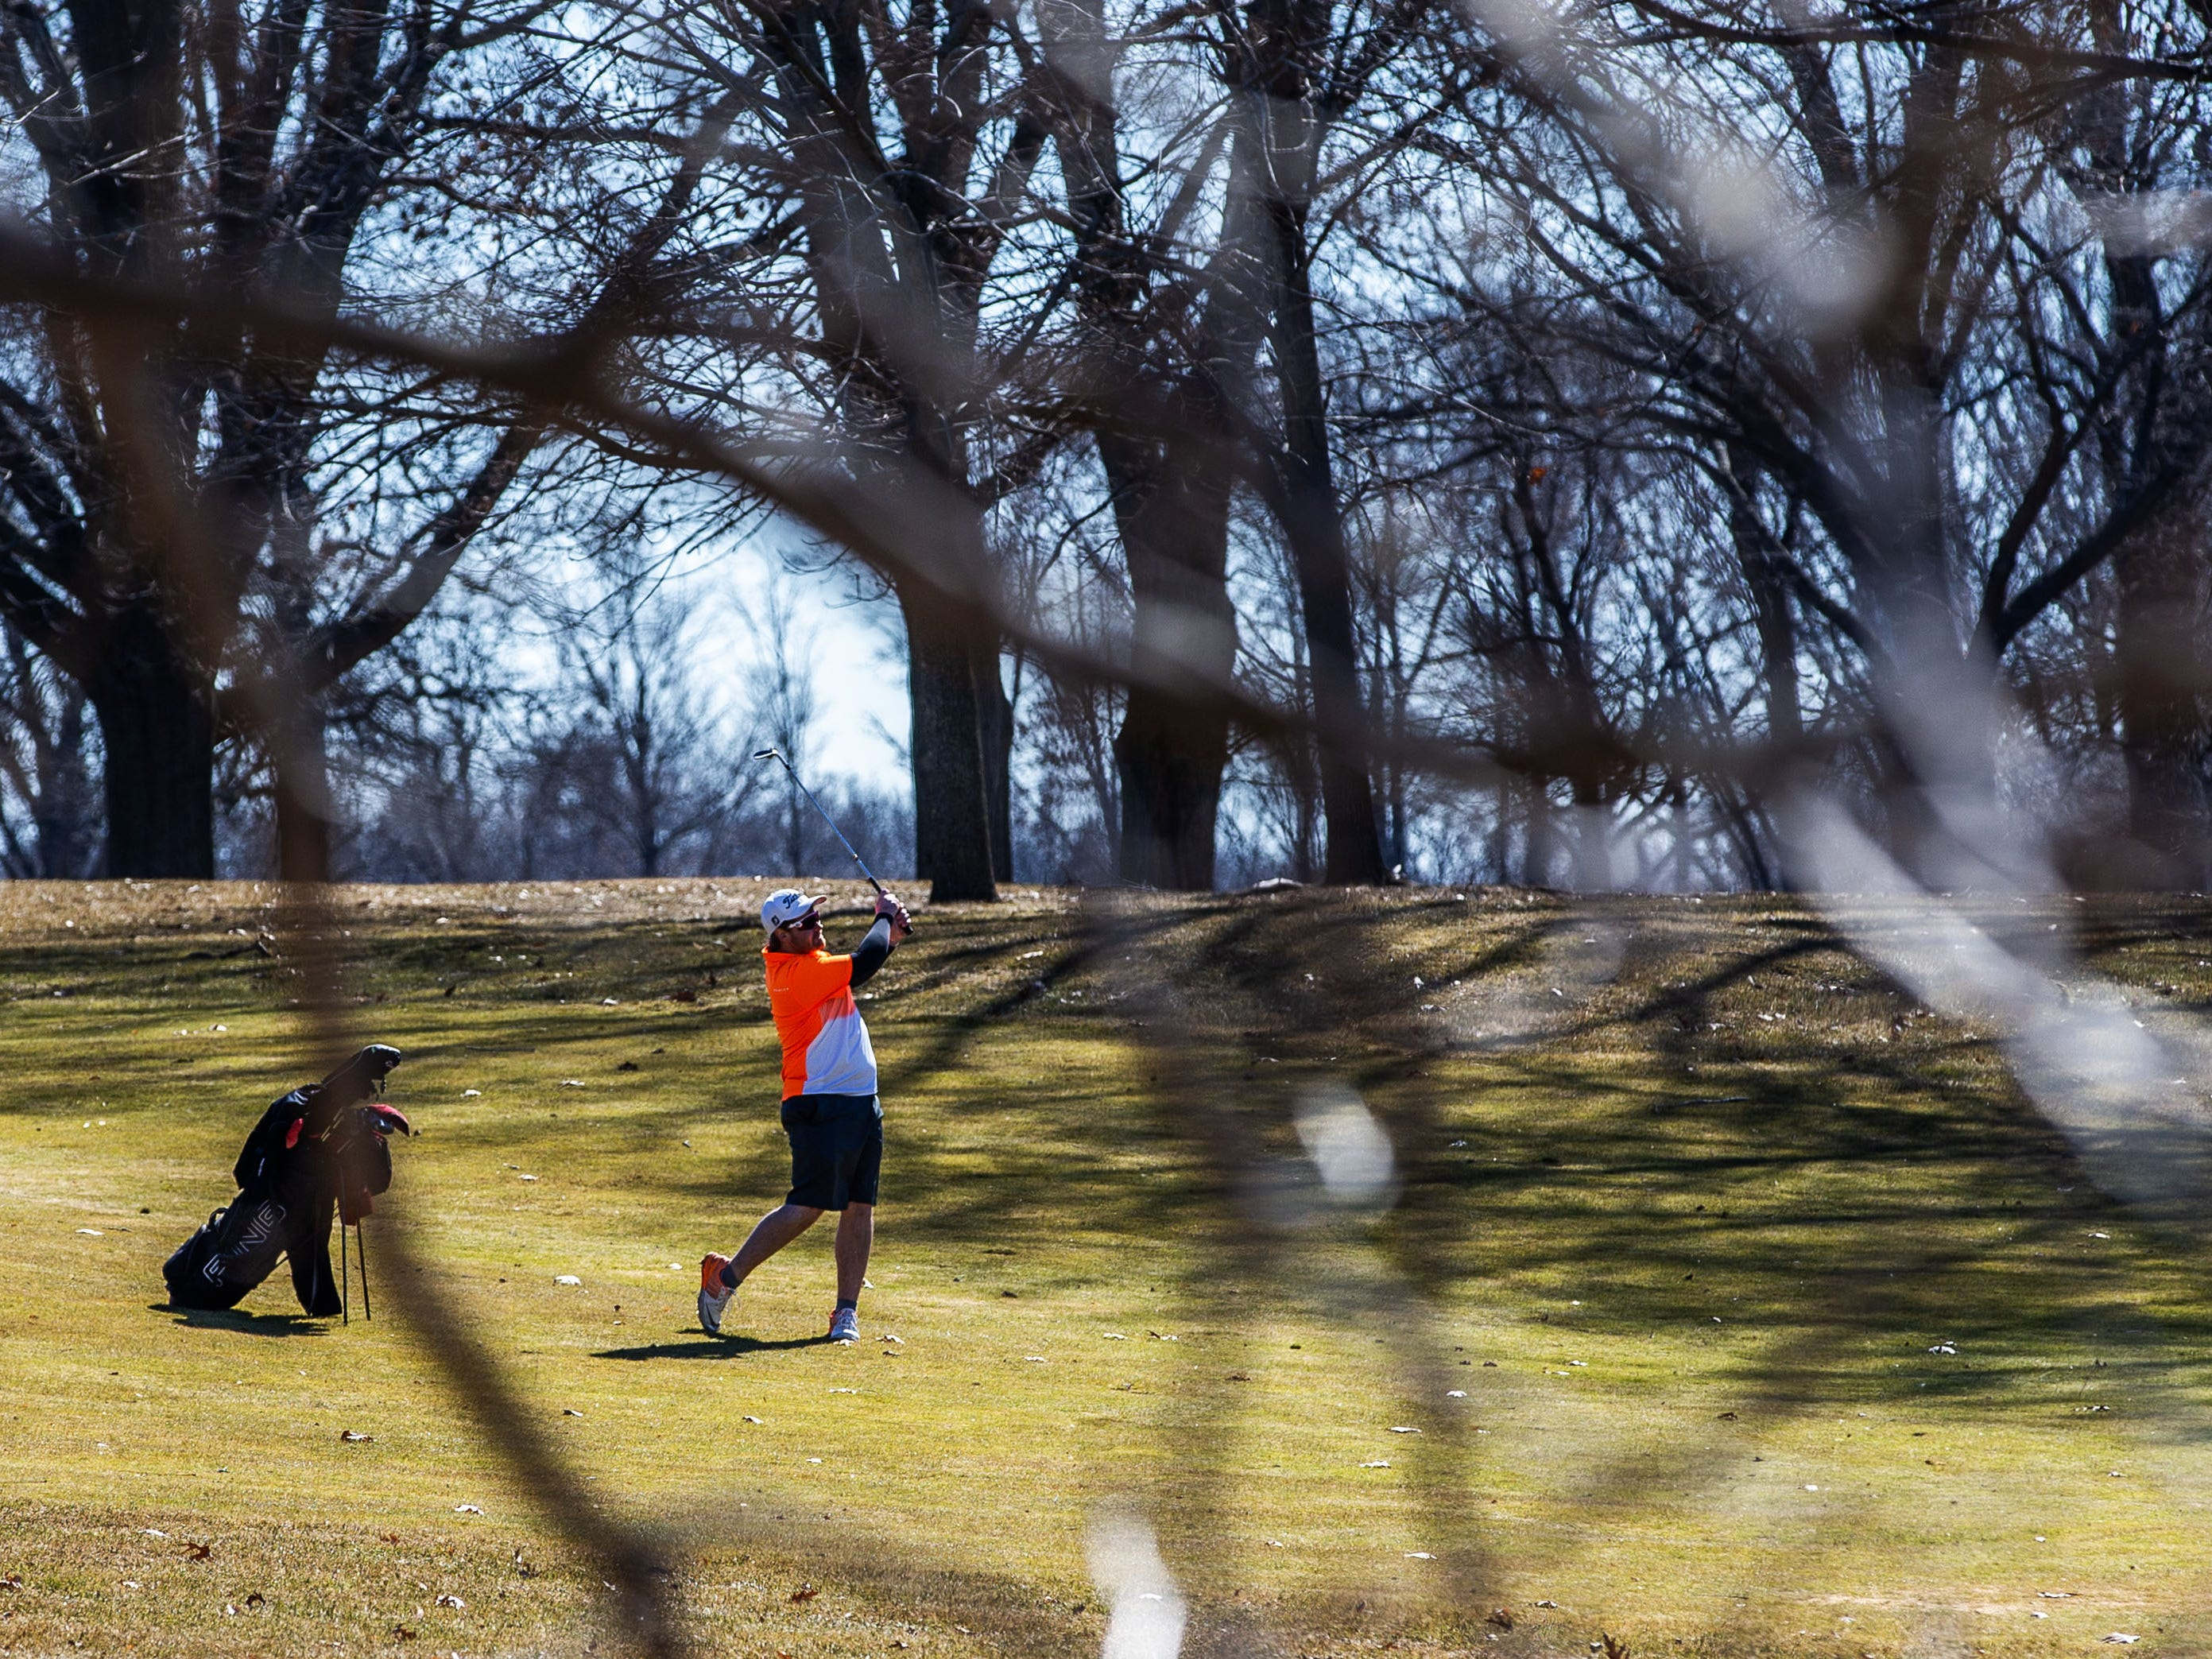 A golfer hits off a fairway at Whitnall Park Golf Course in Franklin on Saturday, March 23, 2019. Warm sunny weather lured many enthusiasts outside to enjoy the game.